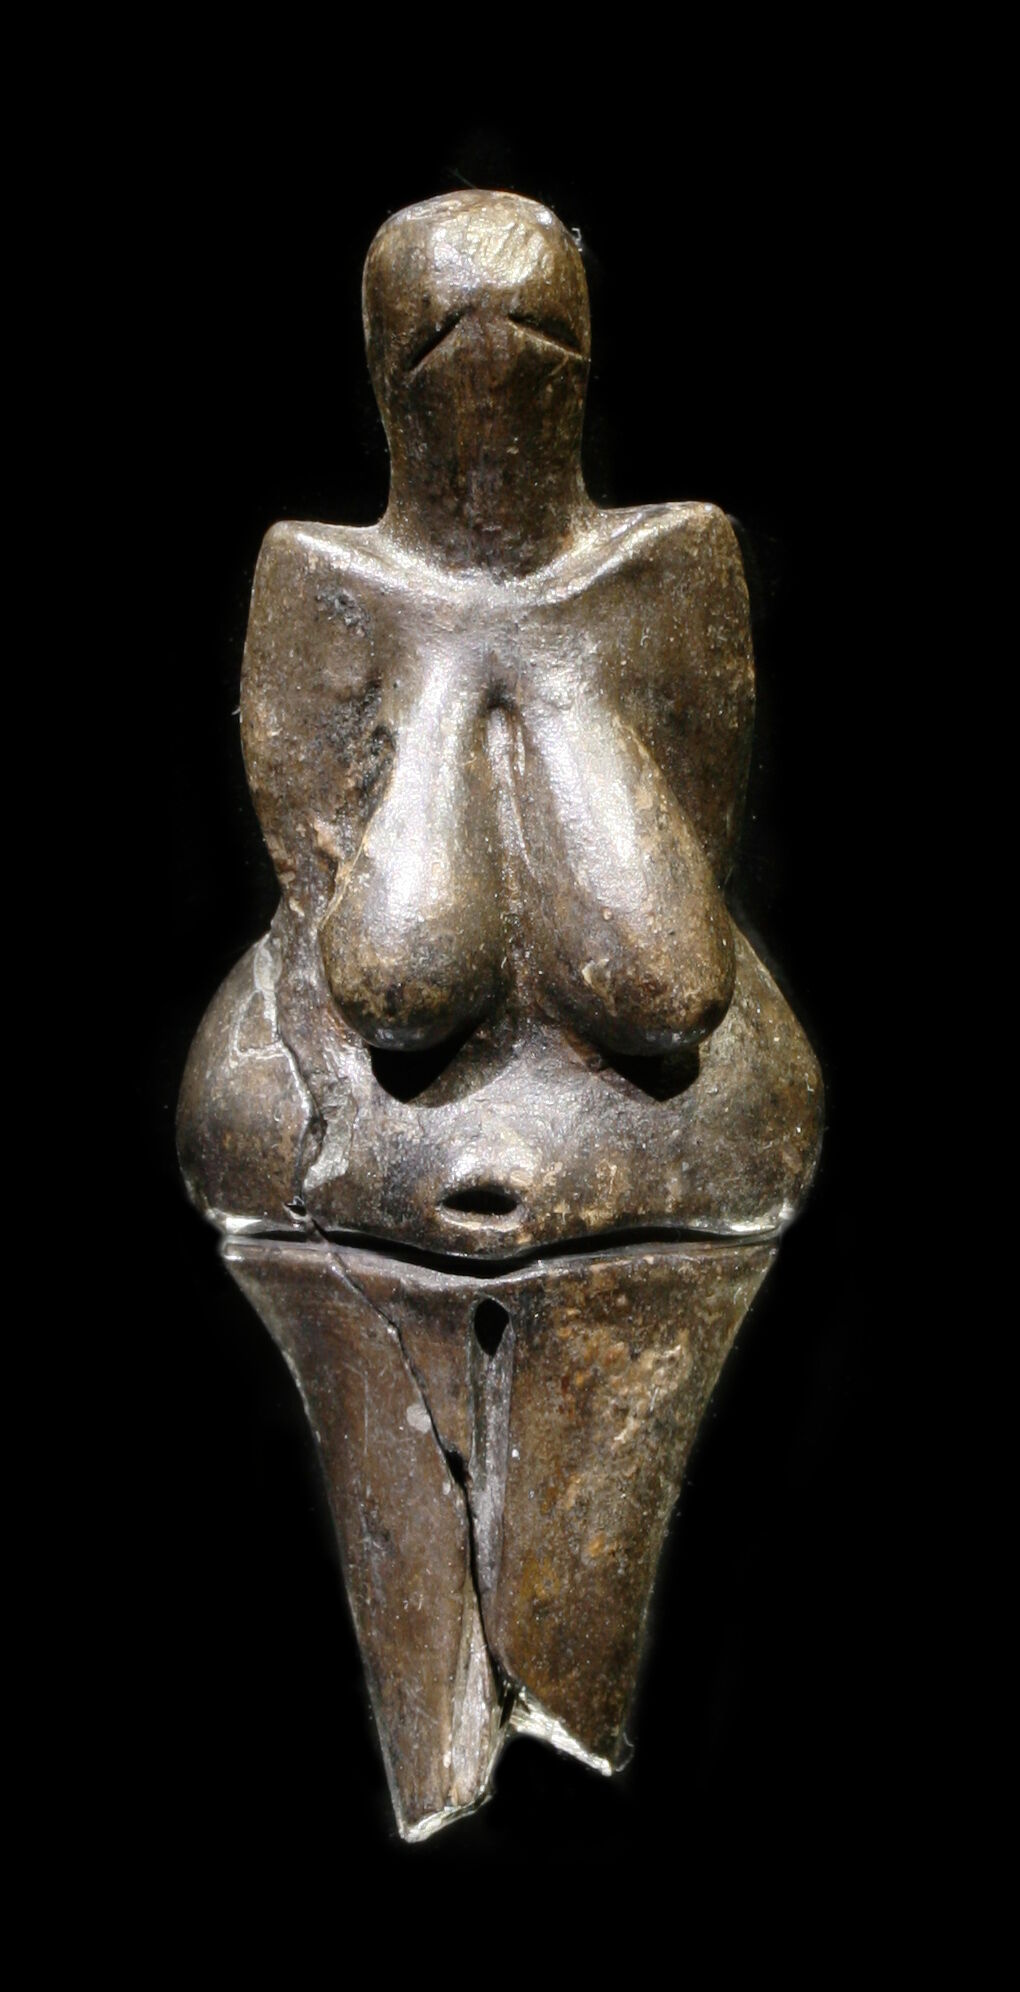 Venus of Dolní Věstonice, 29,000–25,000 B.C. Image via Wikimedia Commons.